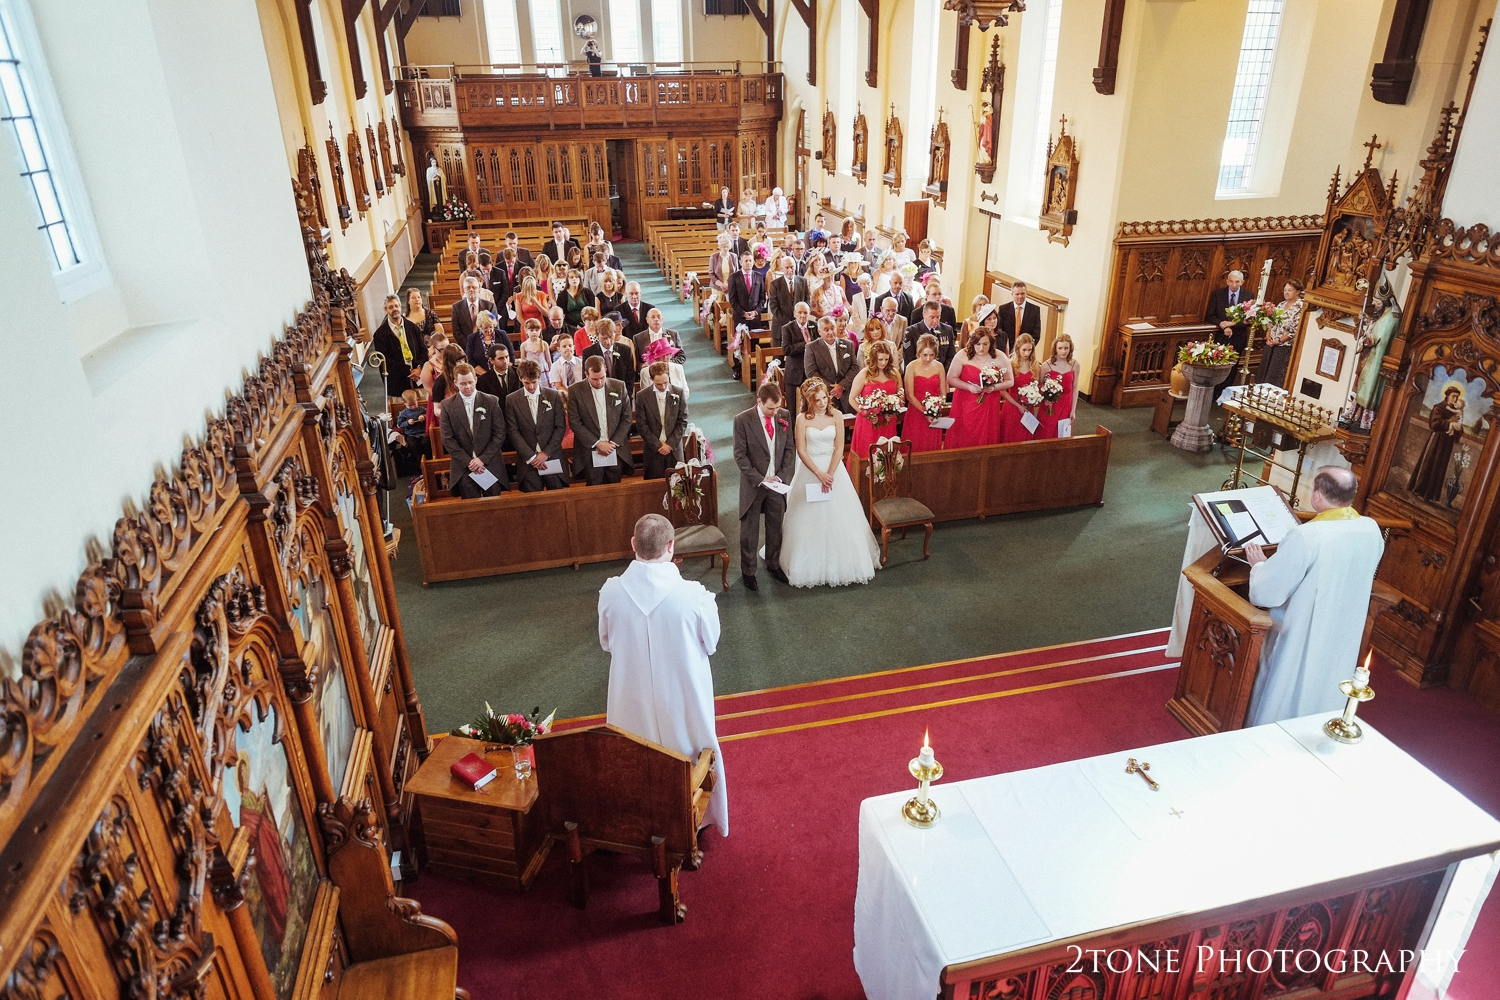 We love to find unusual angle to take photographs from, and this is a great example, setting the scene of this wedding ceremony and allowing us to see really how beautiful St Aidan's church in Ashington really is.